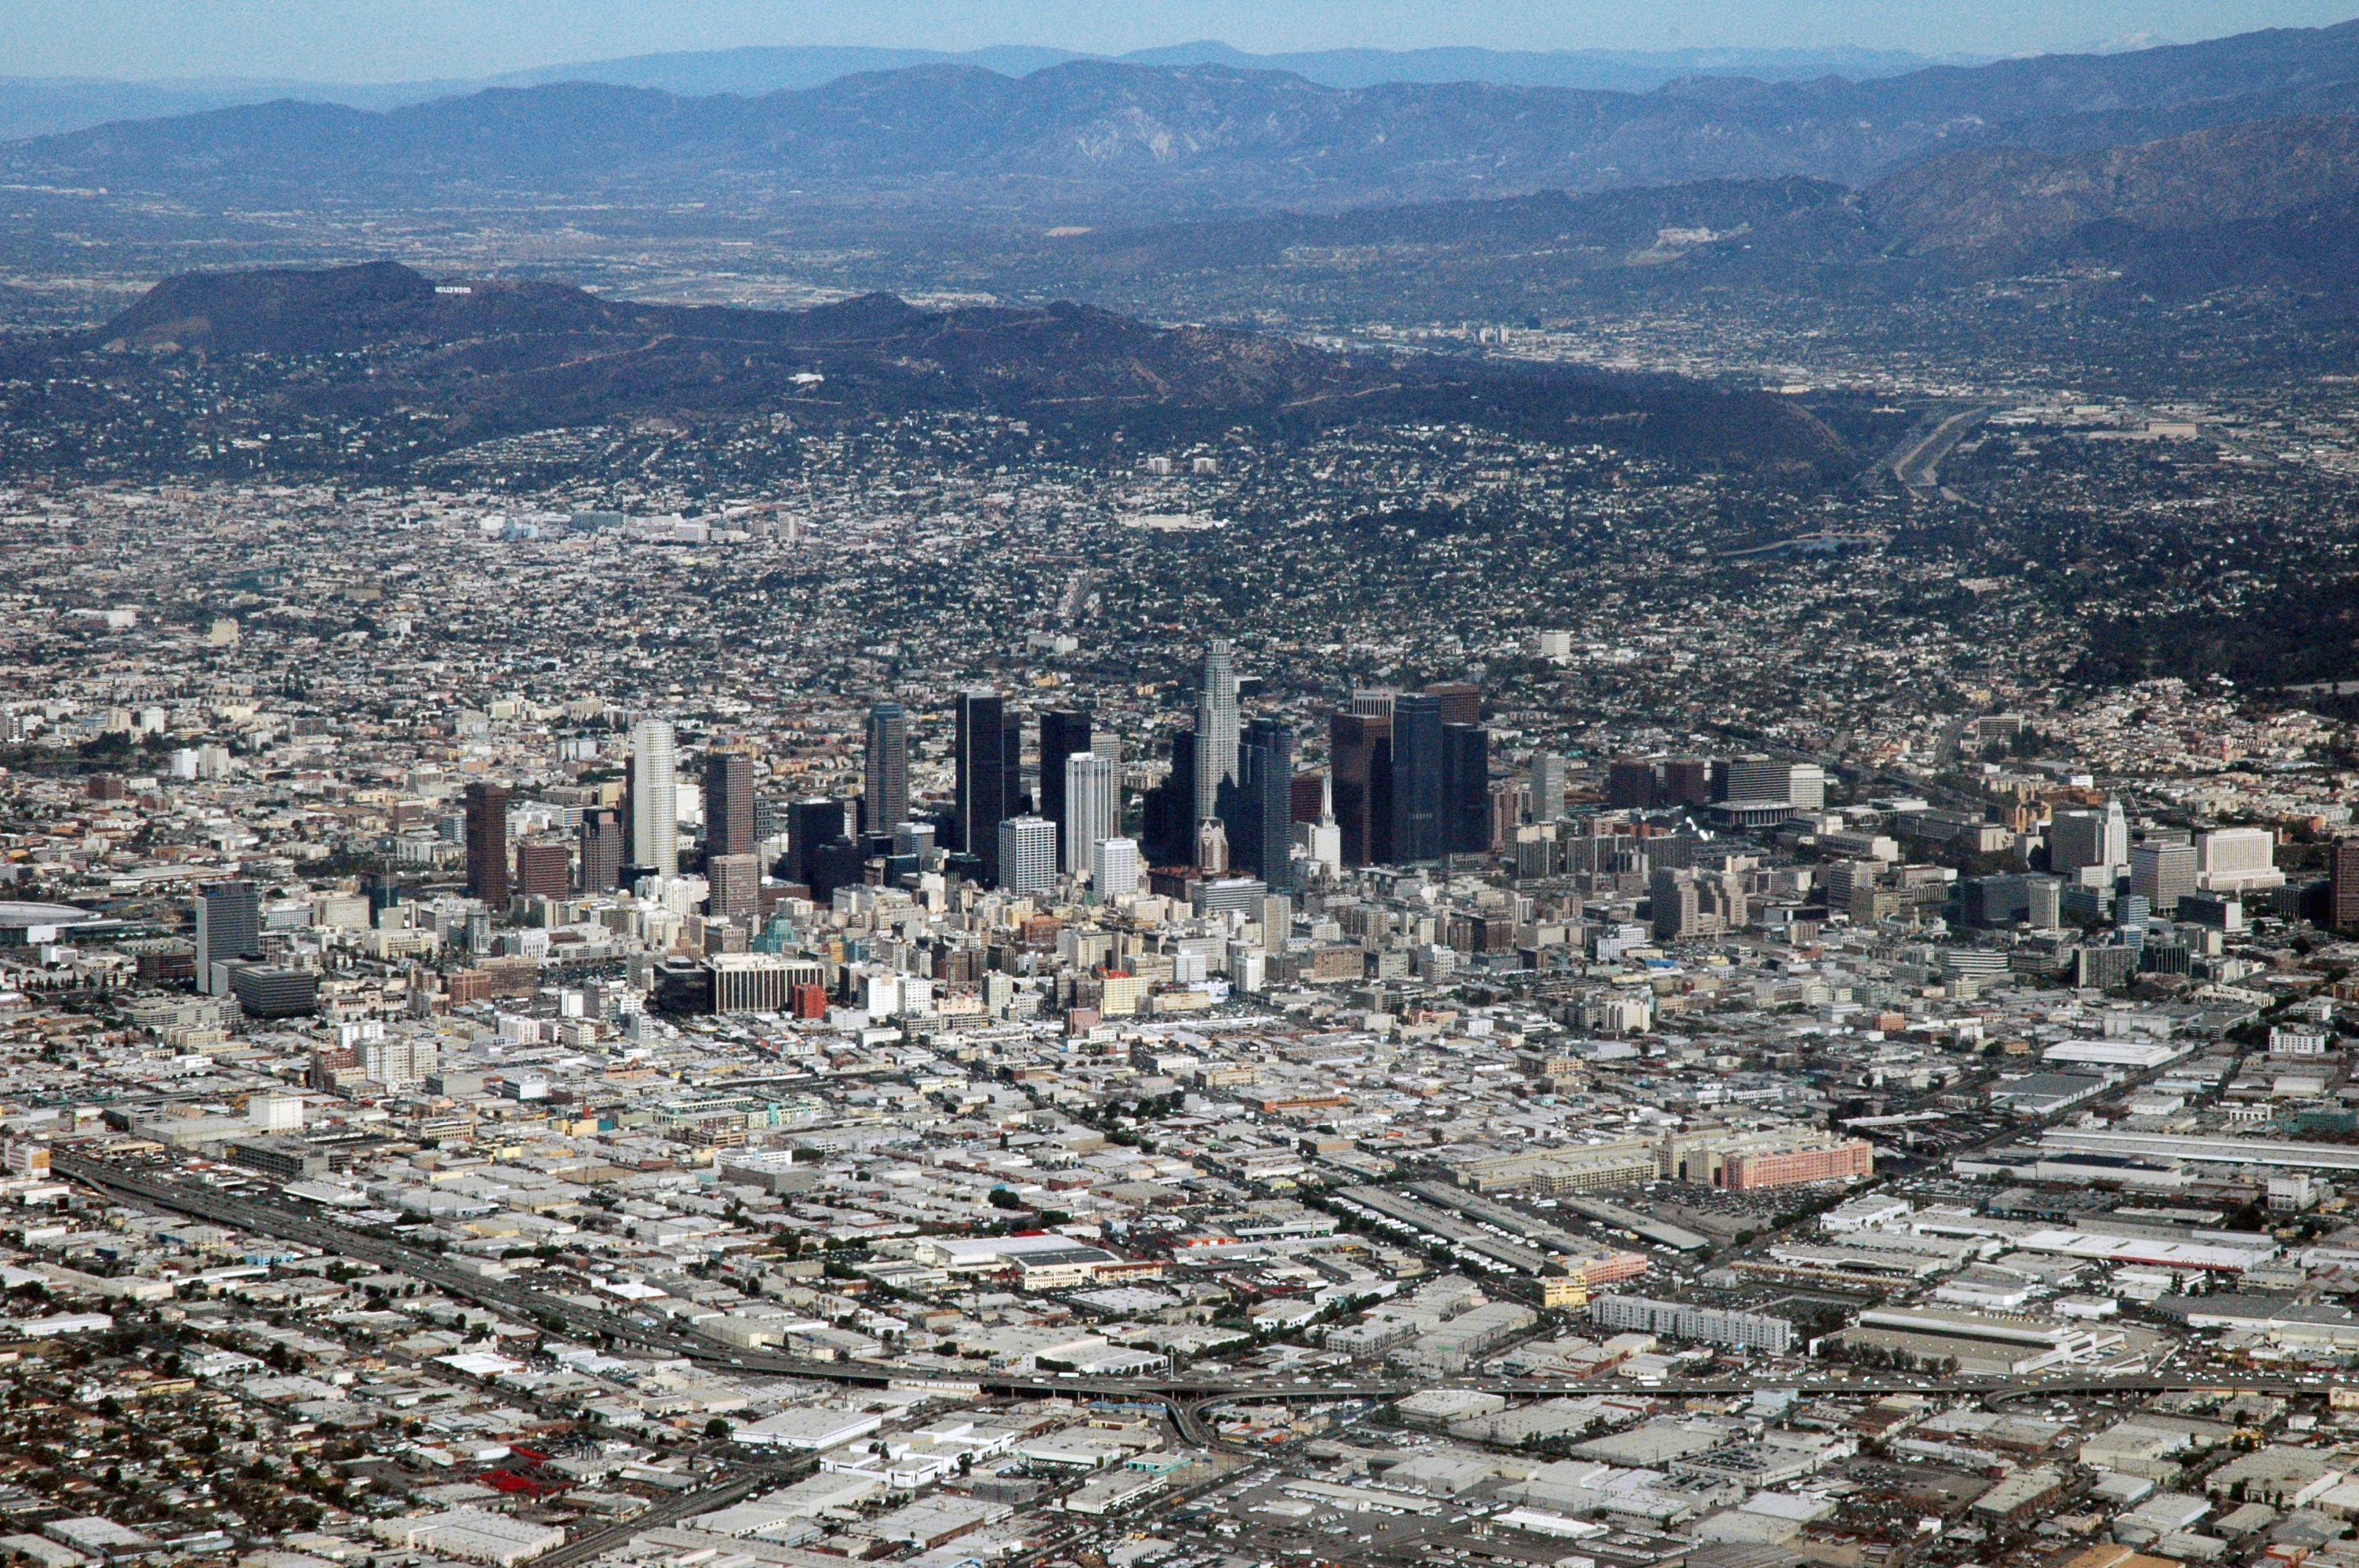 Los_Angeles,_CA_from_the_air.jpg